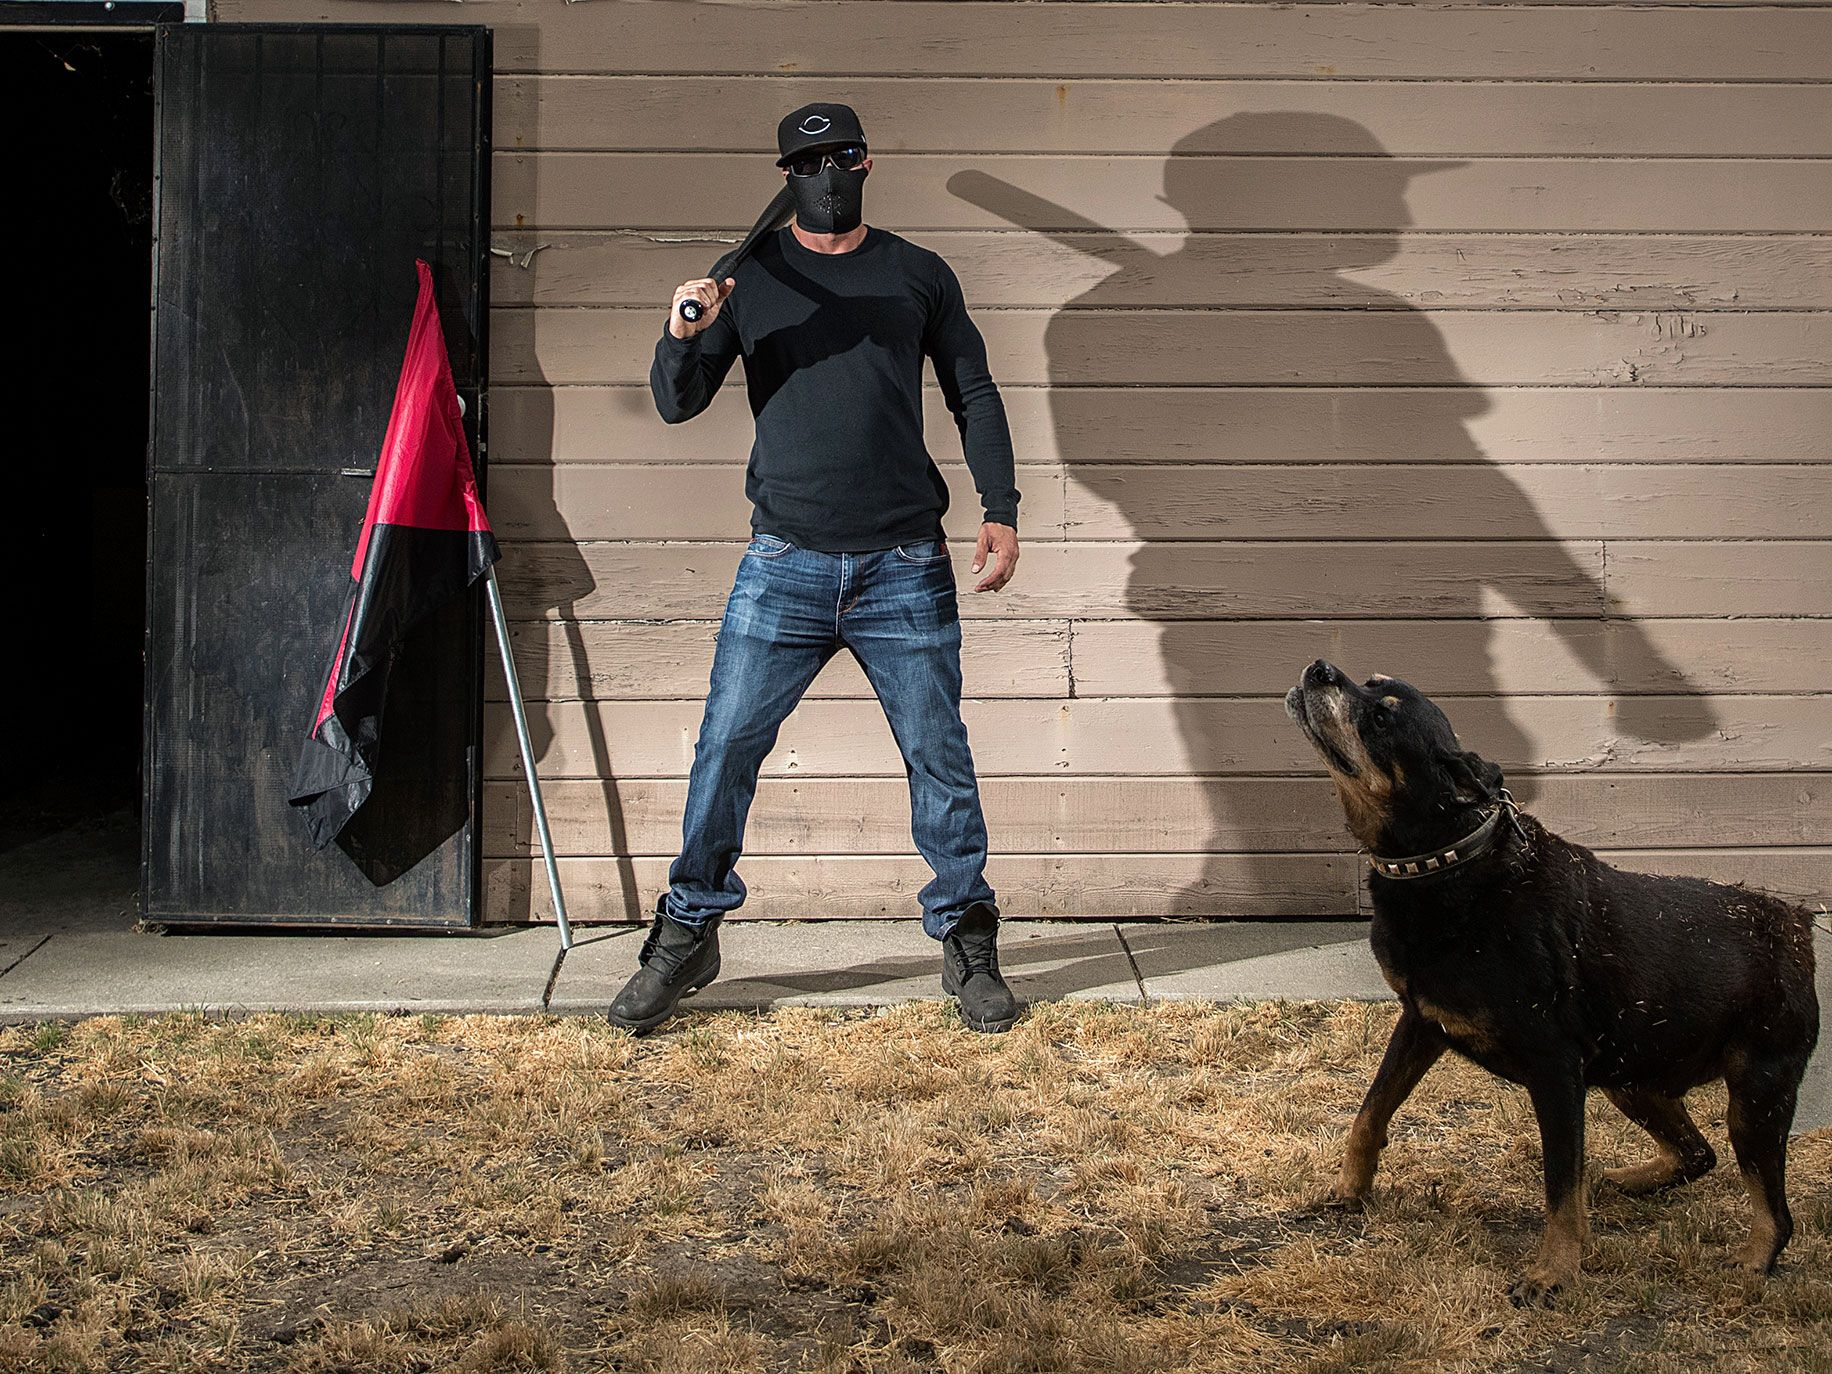 """""""Dominic,"""" a member of the Bay Area antifa, says he's been """"fighting Nazis"""" for 20 years."""